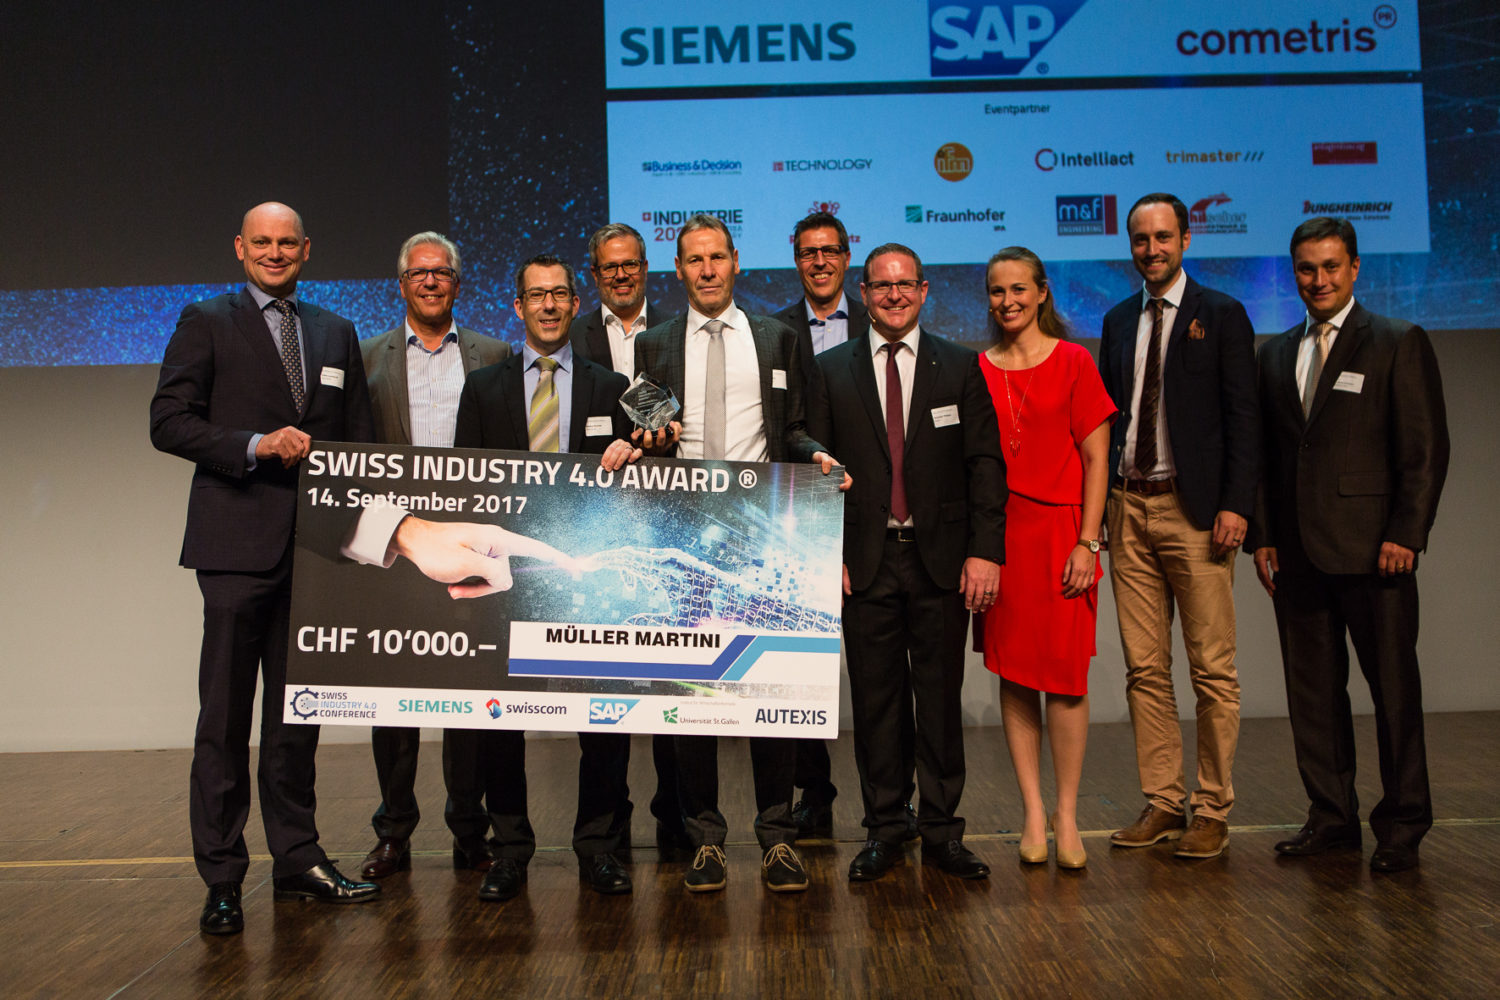 Swiss Industry 4.0 Conference - Müller Martini gewinnt Swiss Industry 4.0 Award